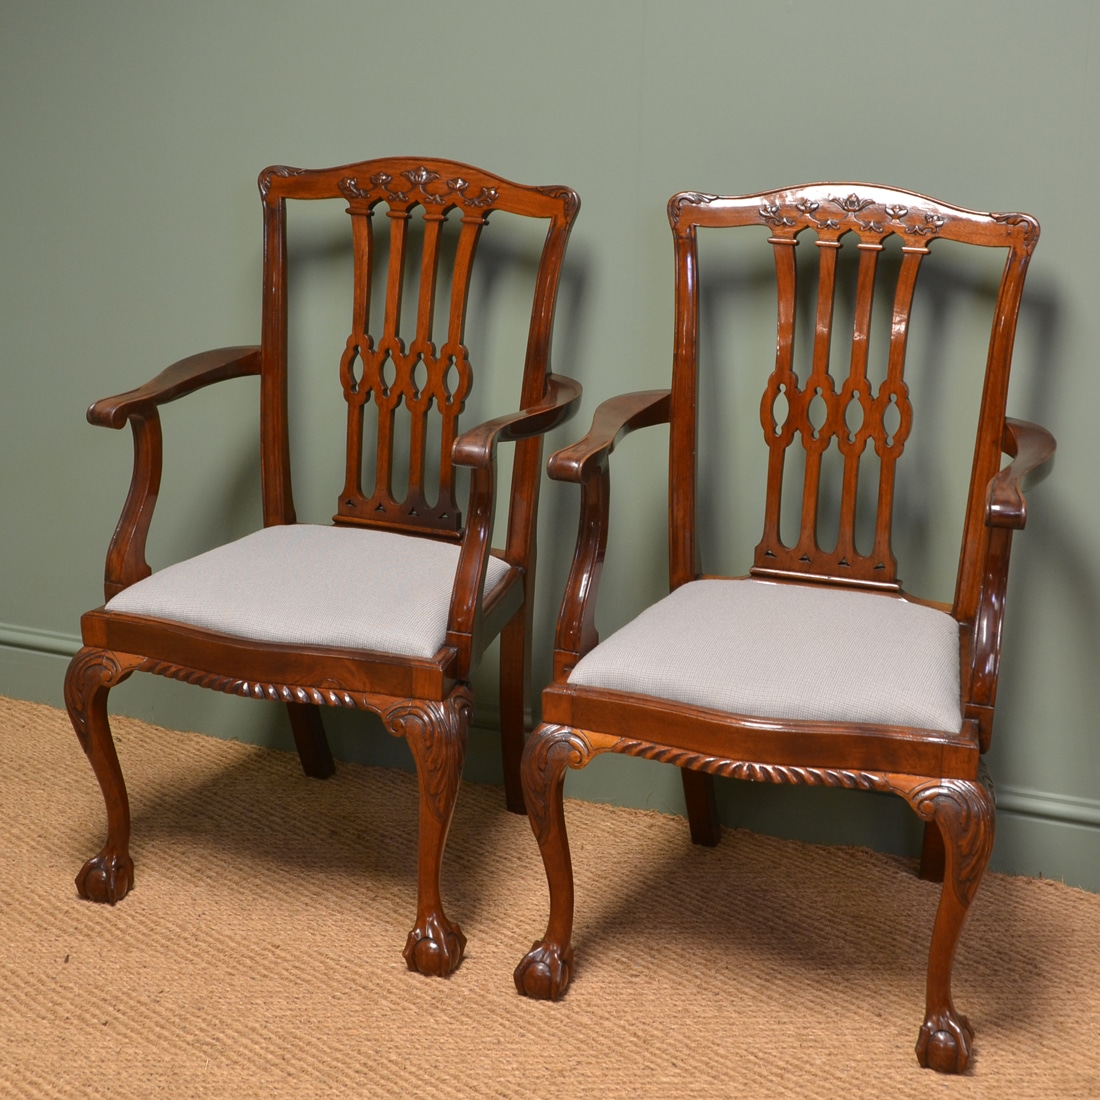 Impressive pair of quality edwardian mahogany chippendale